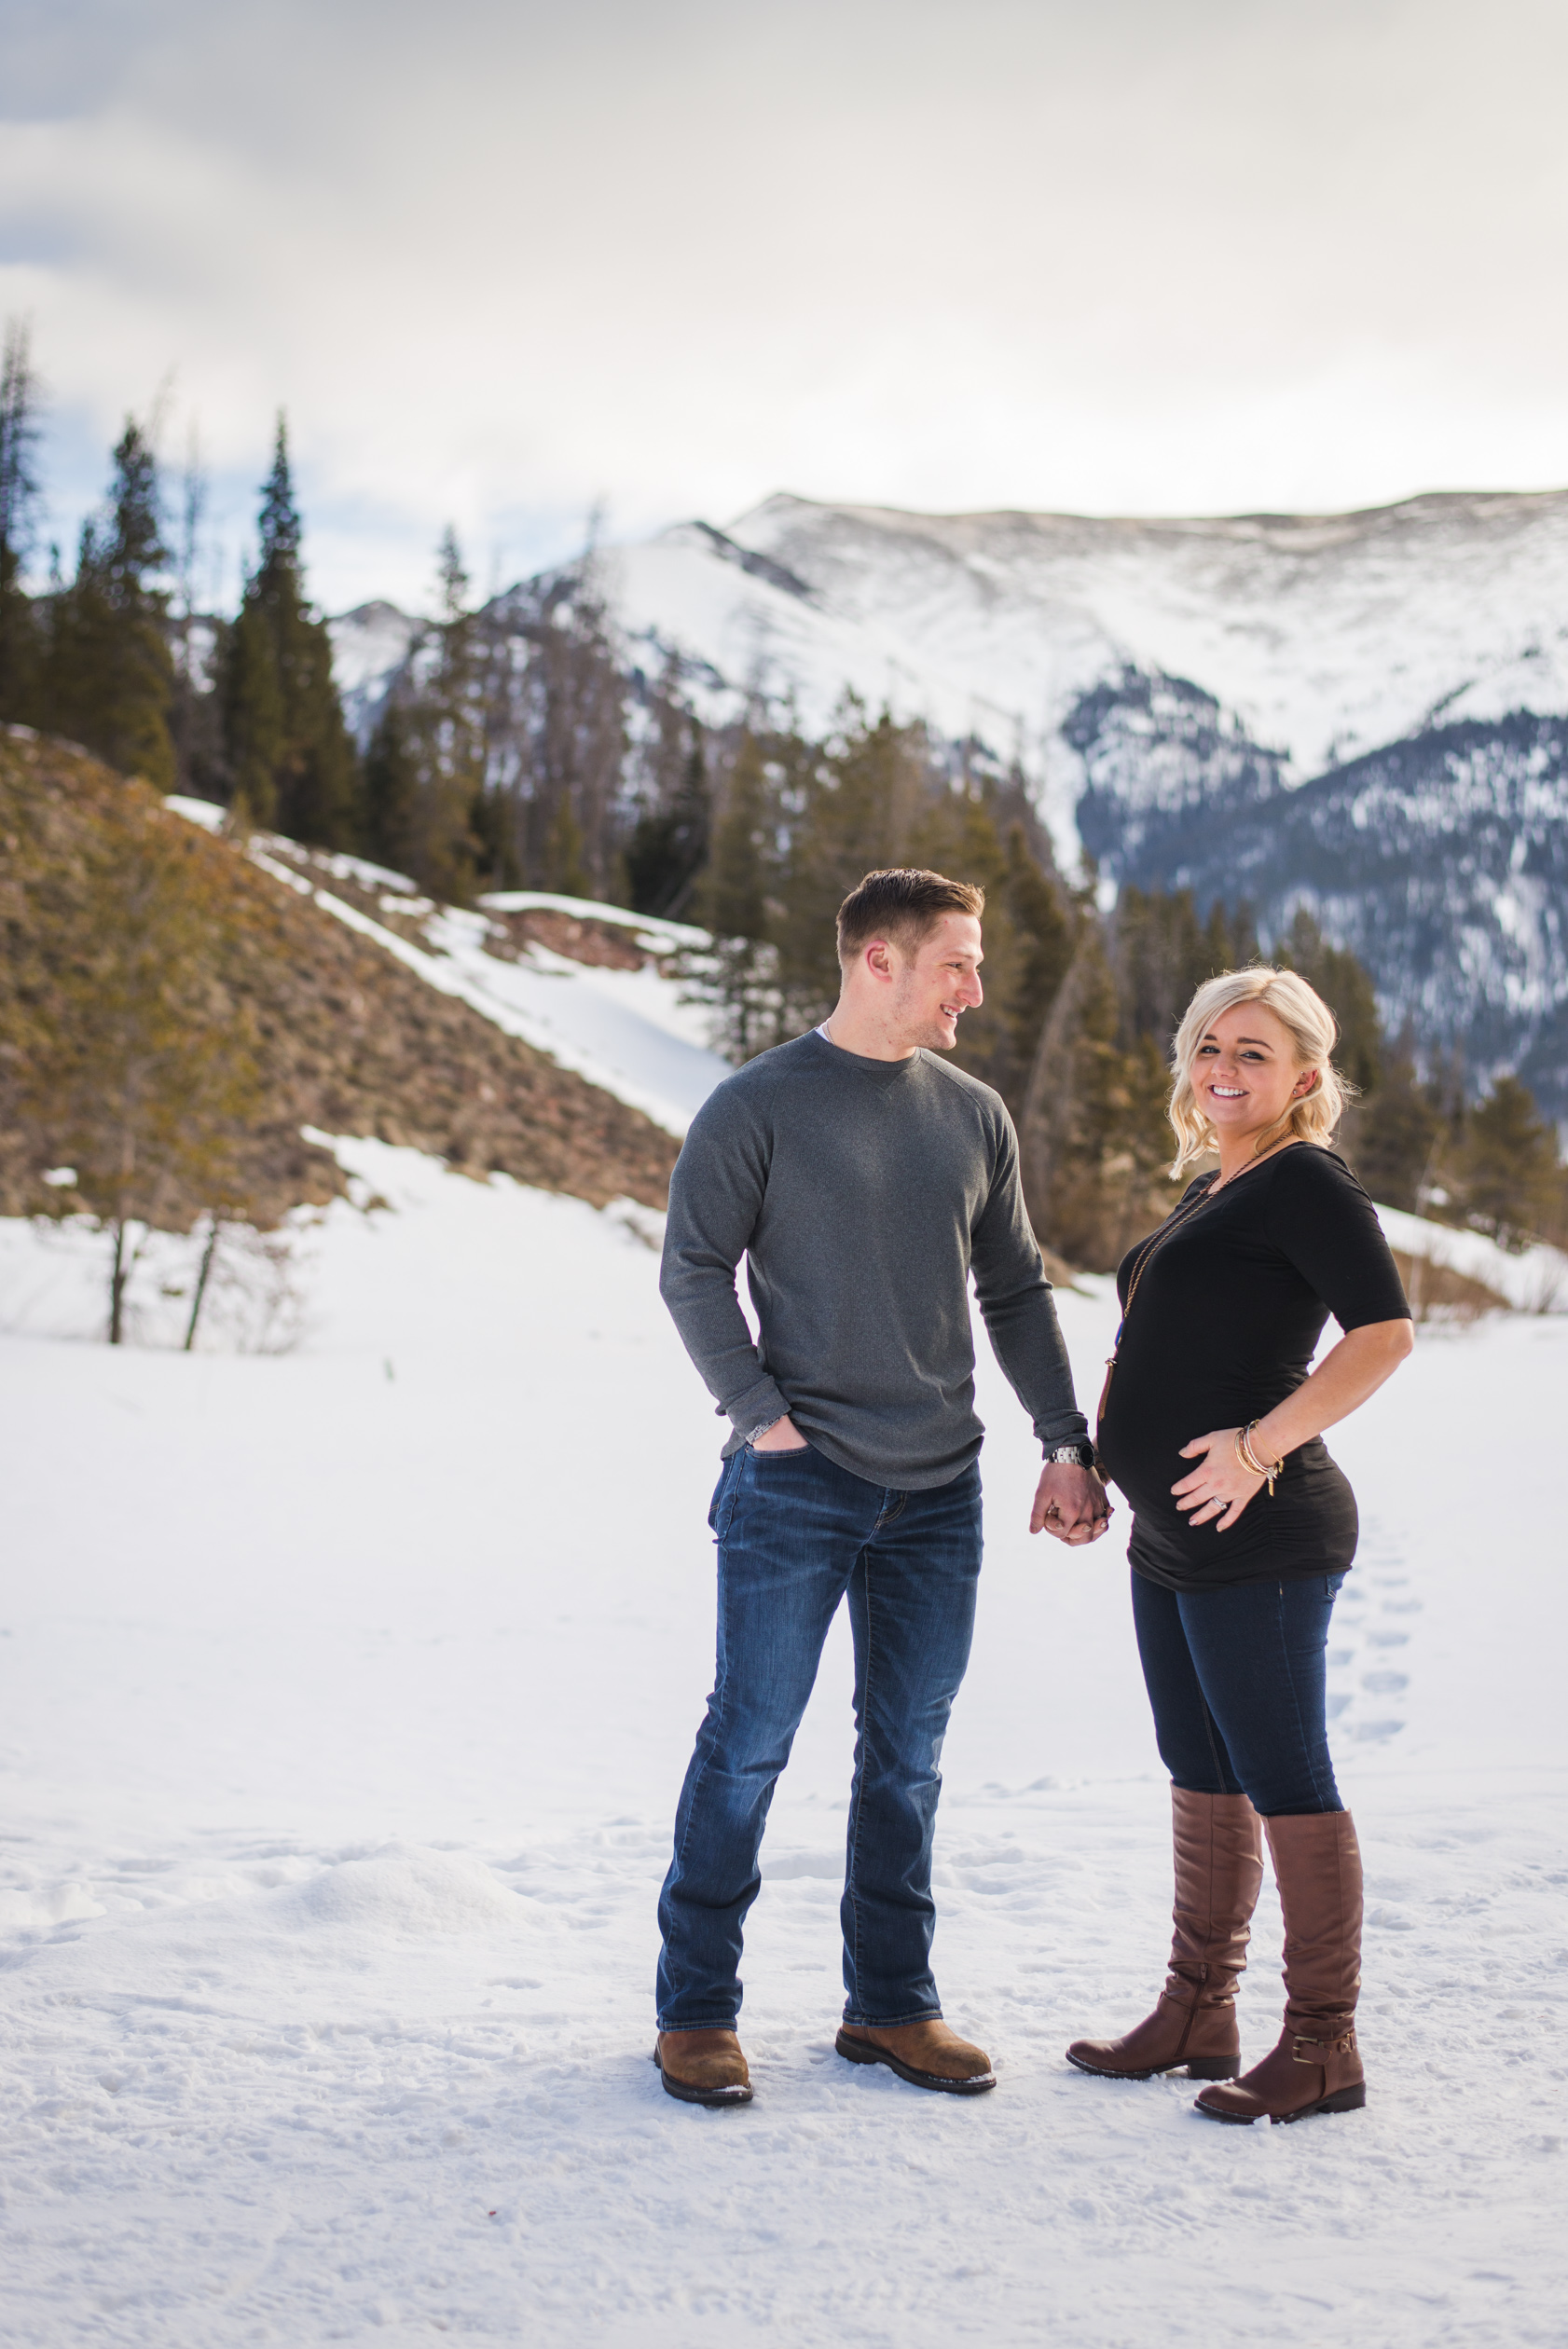 Destination maternity session in the heart of the Colorado Rocky Mountains at Copper Mountain   Keeping Composure Photography